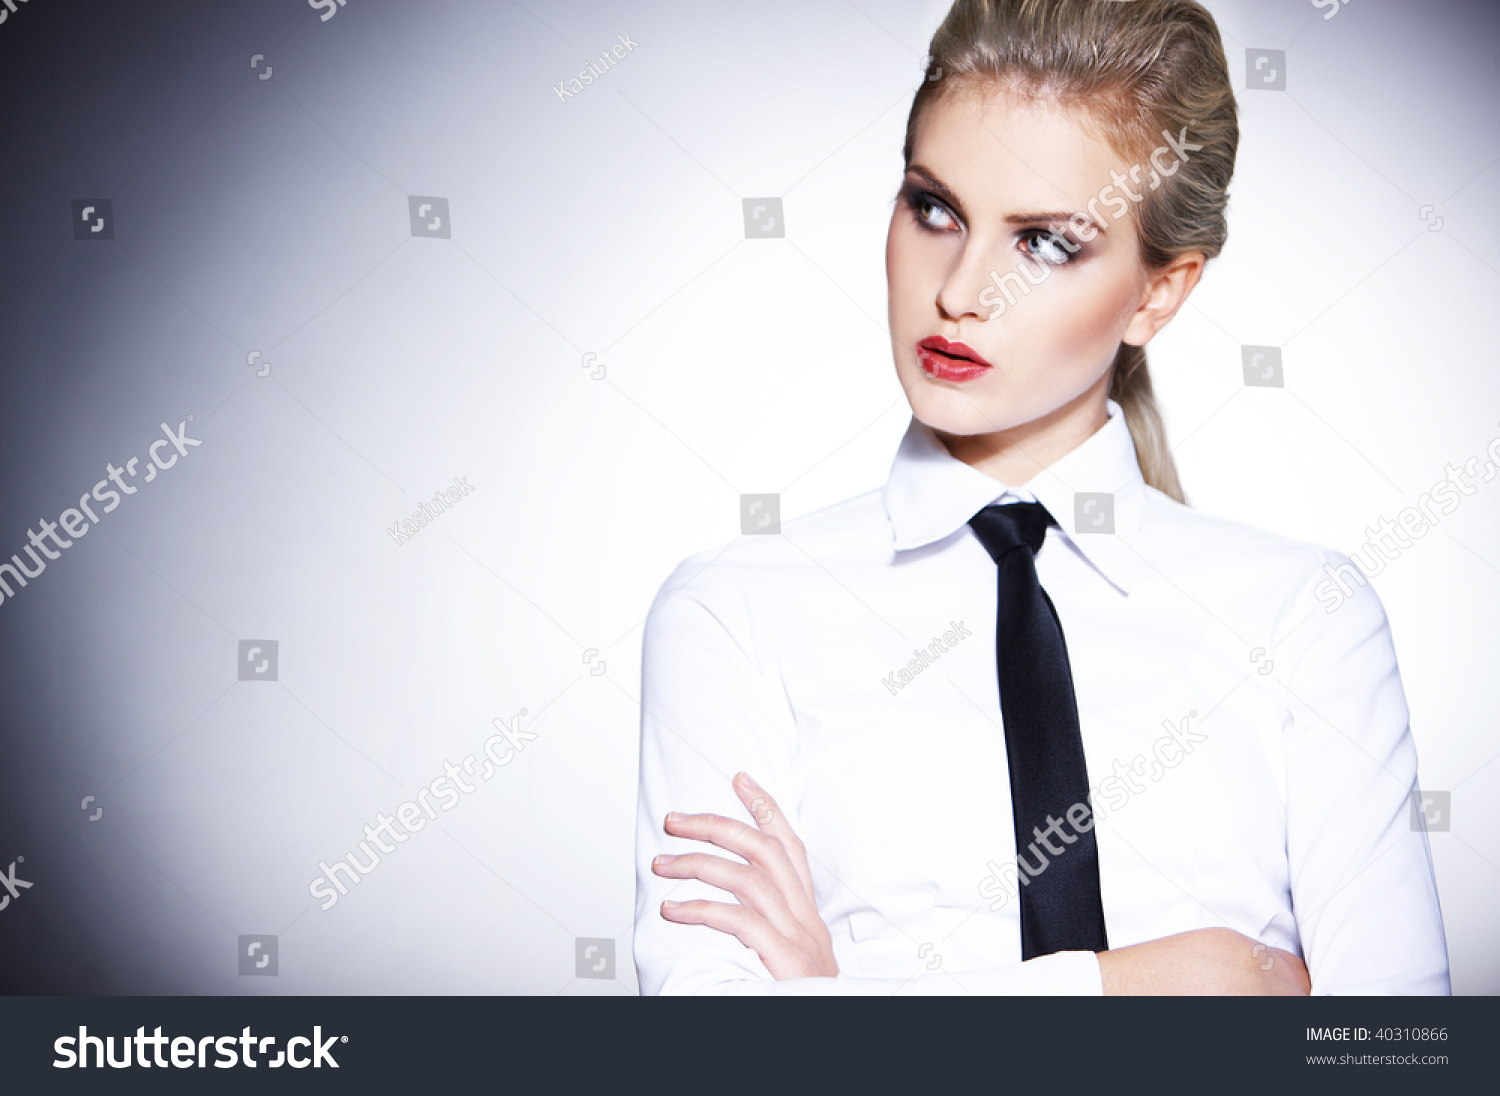 Portrait Urban Business Woman Wearing Tie Stock Photo ...